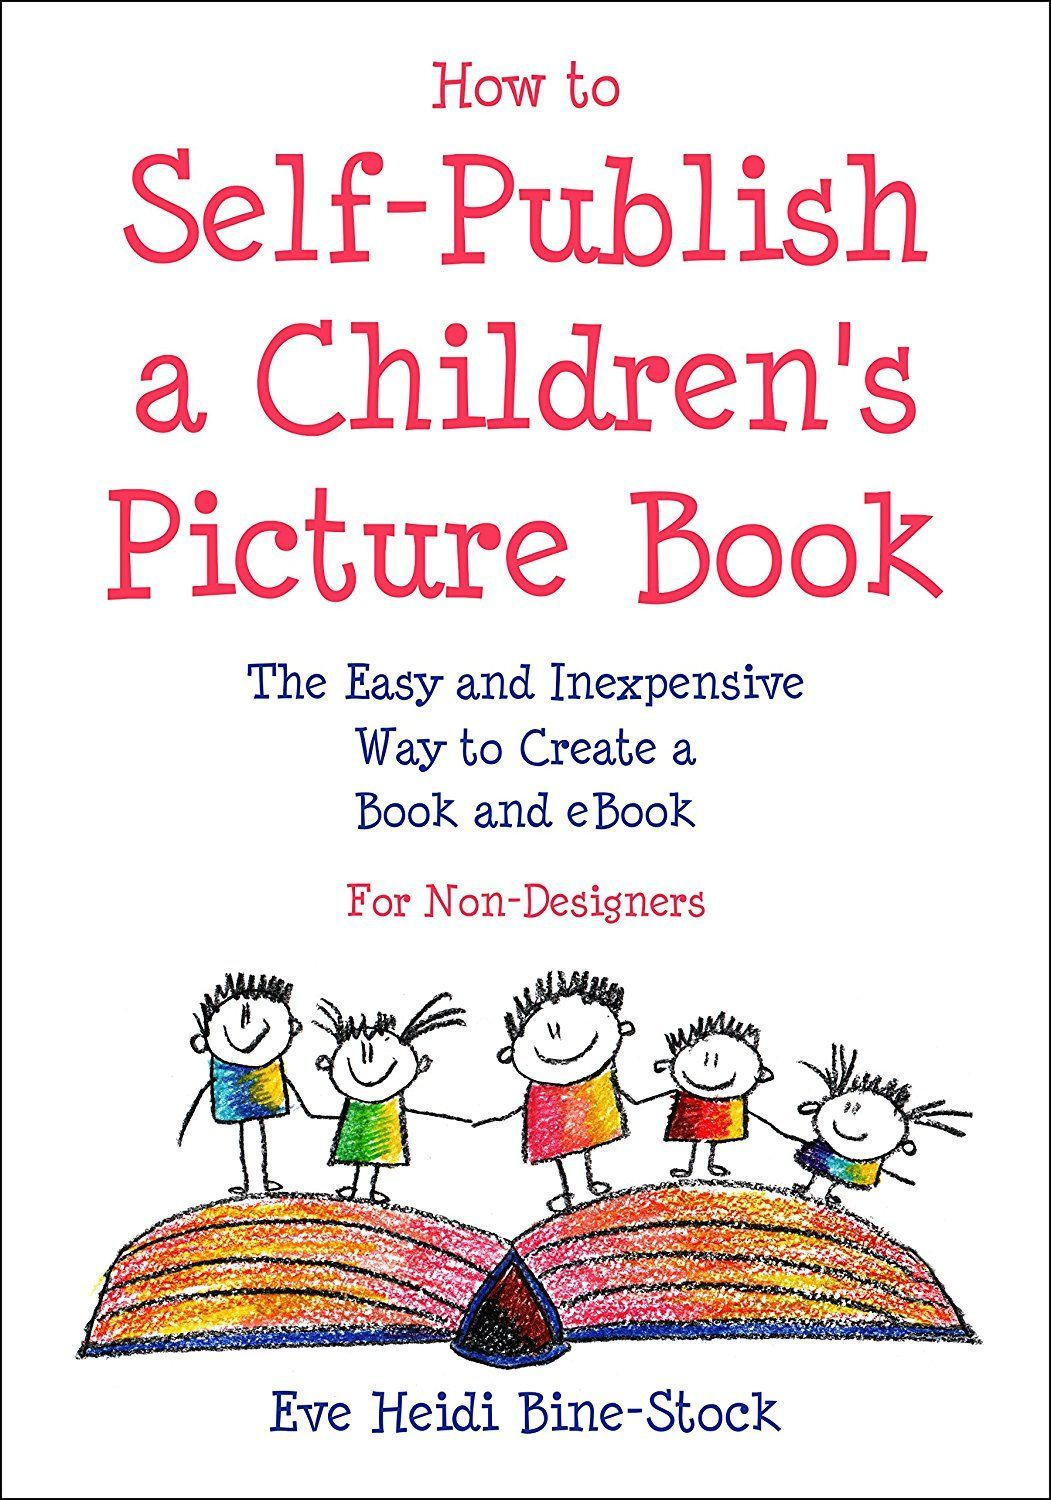 How to SelfPublish a Children's Picture Book The Easy